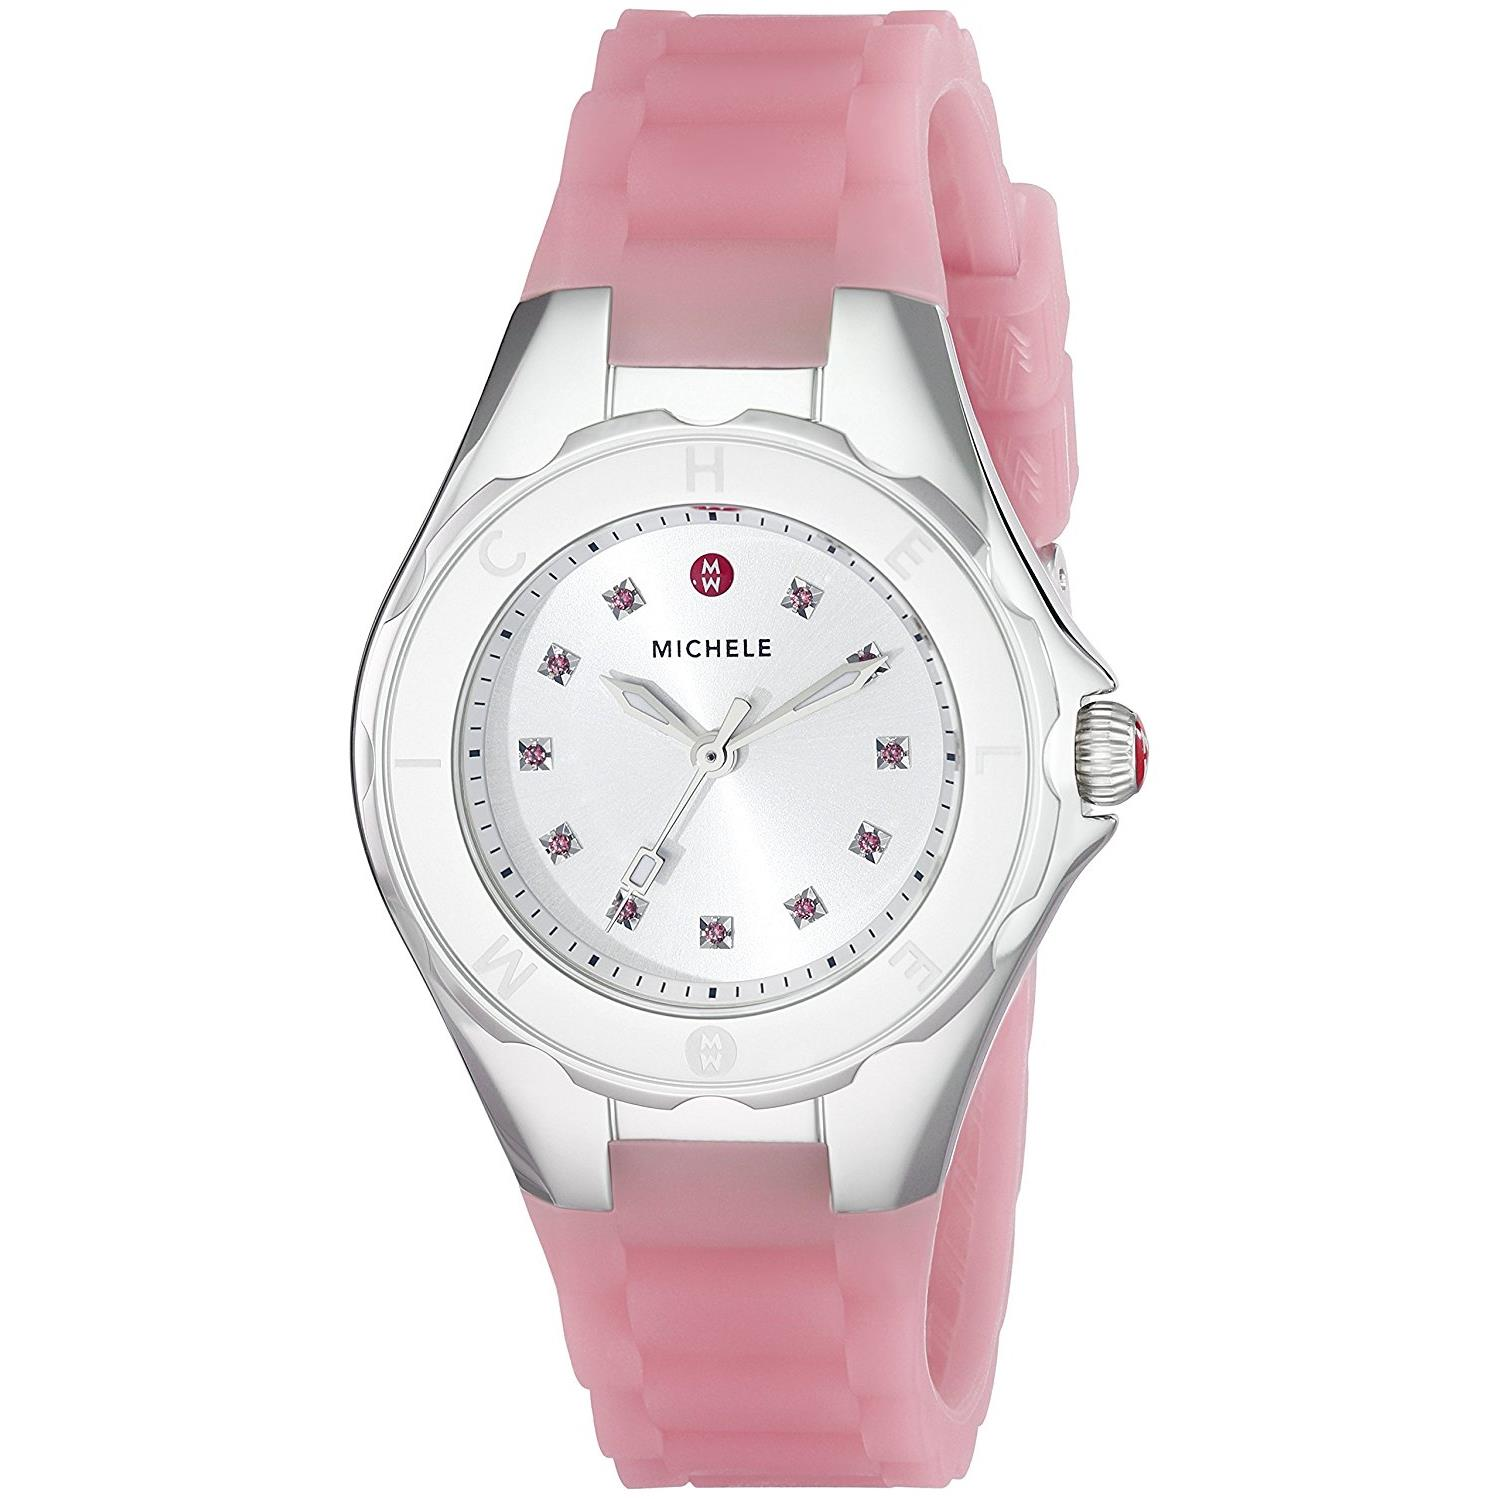 Michele Watches Women's 35mm Pink Silicone Band Steel Cas...